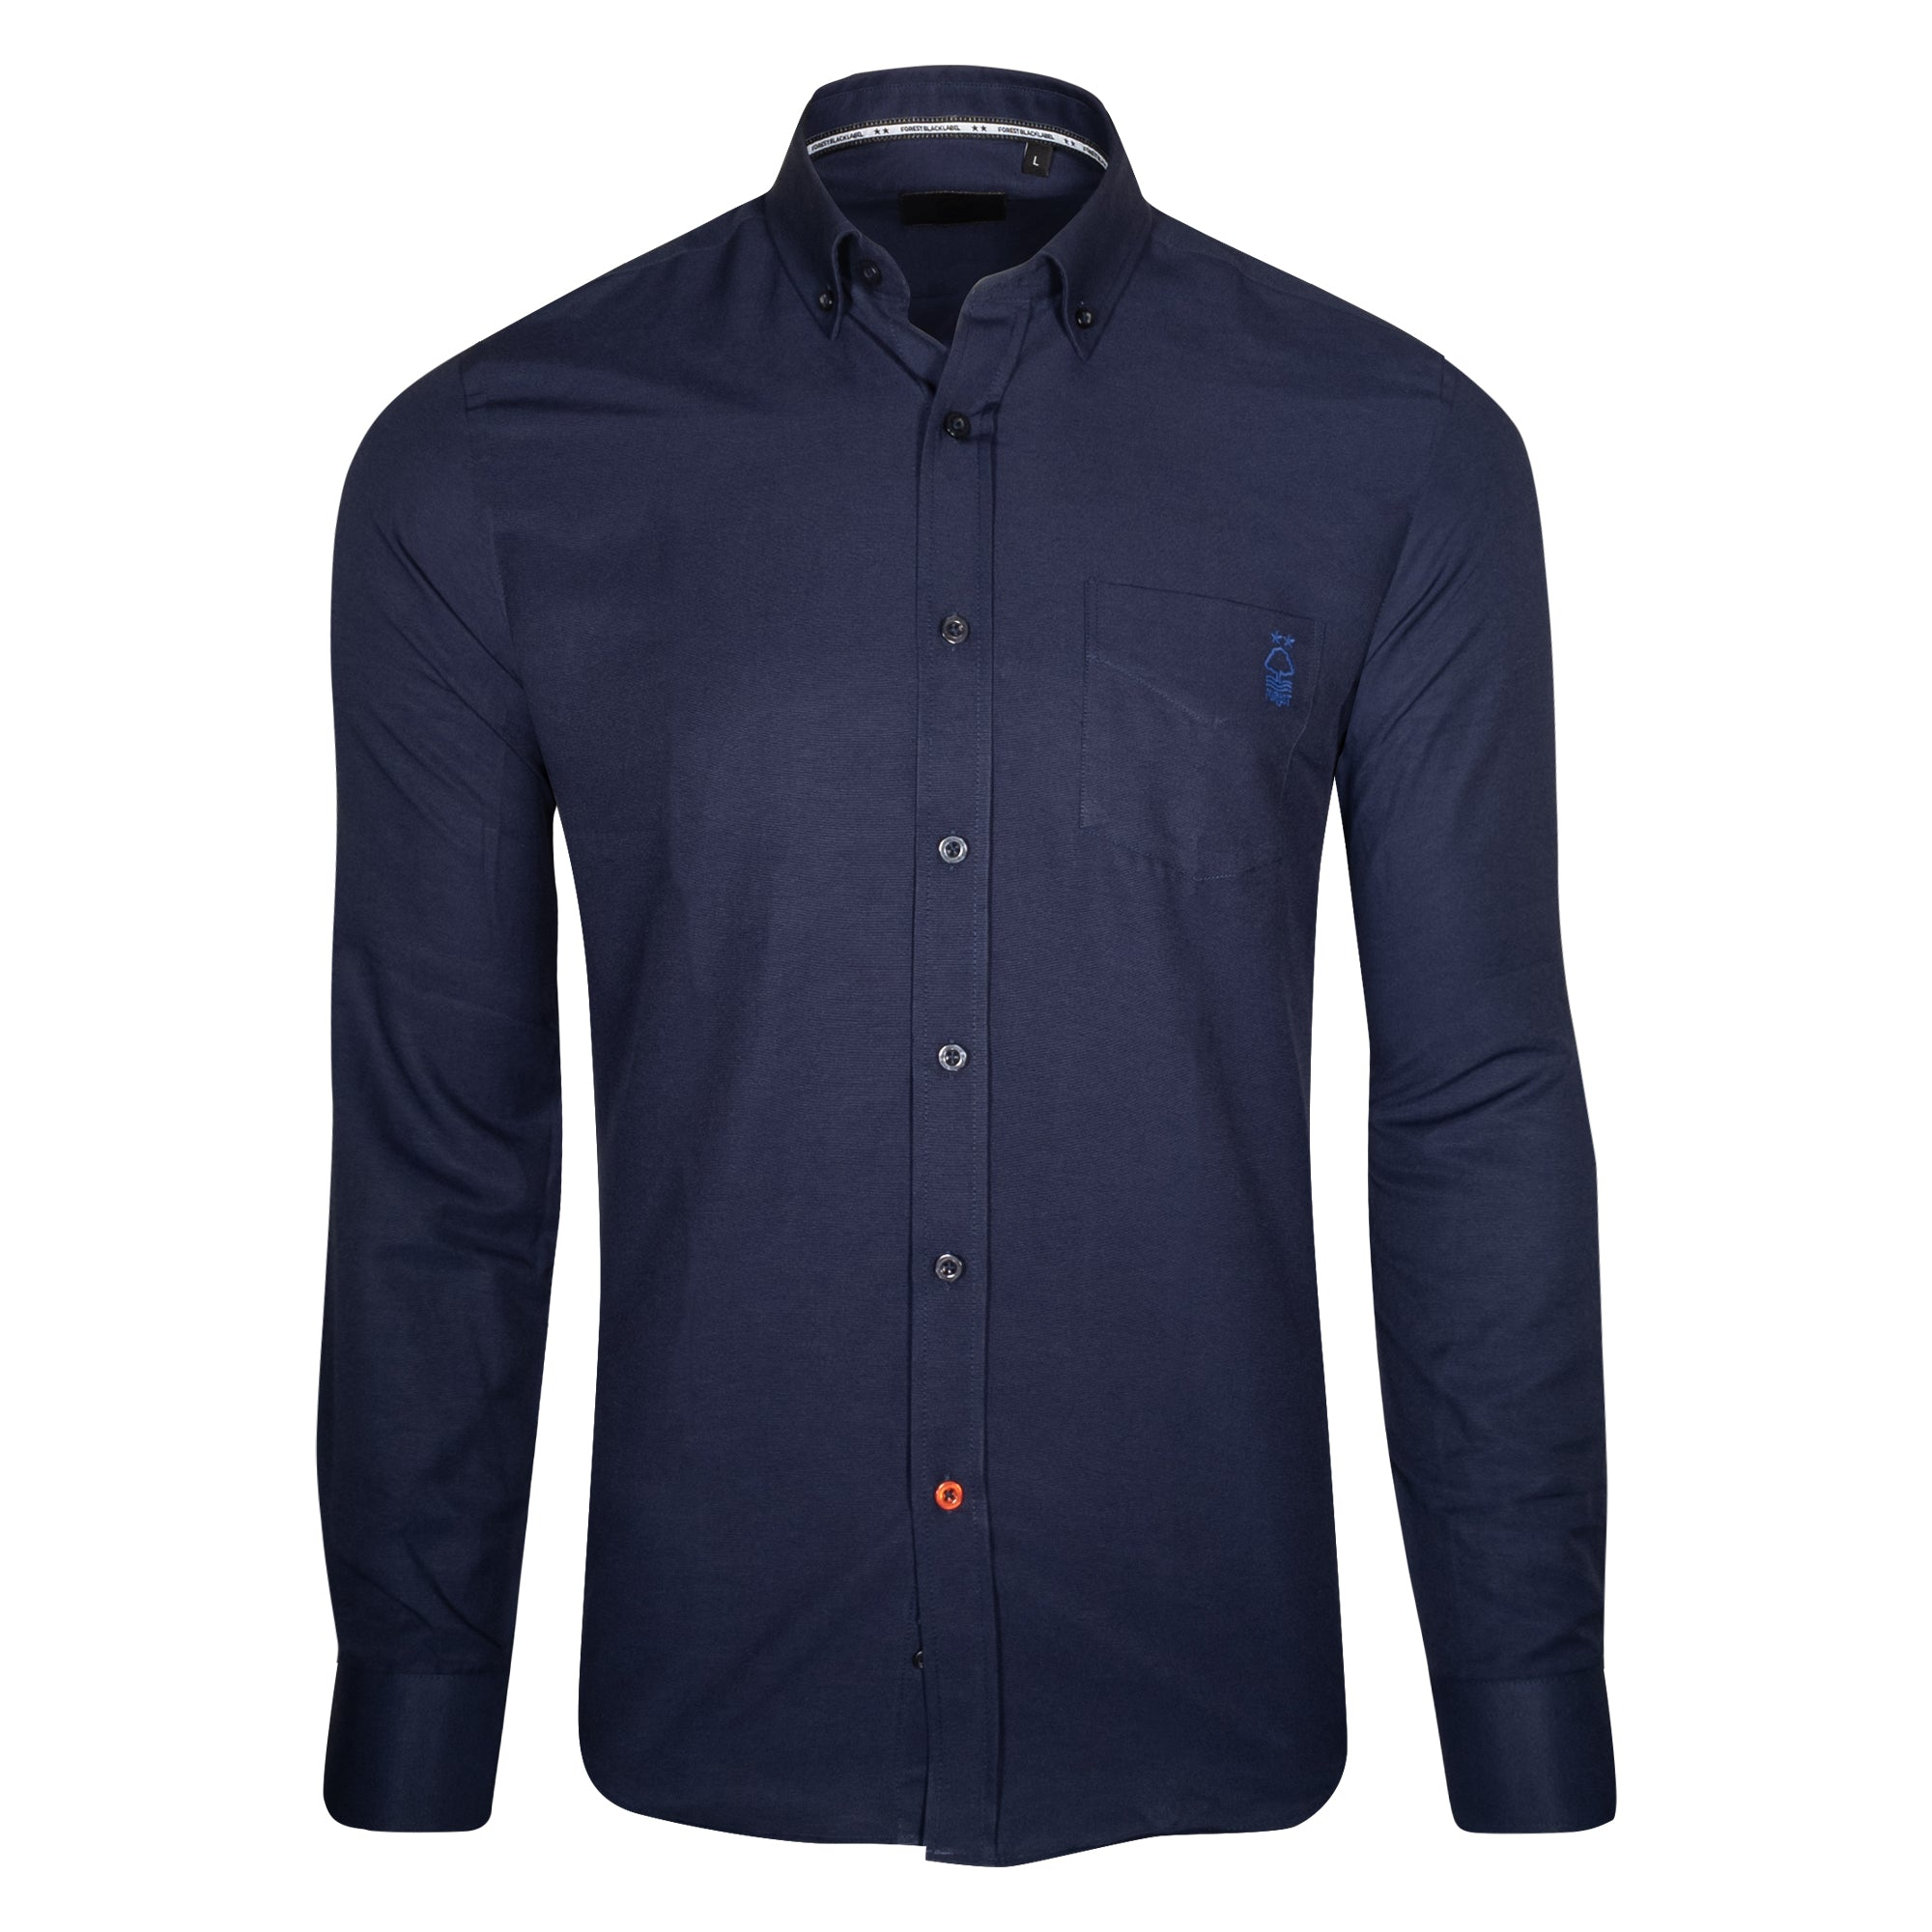 NFFC Mens Navy Chambray Longsleeve Shirt